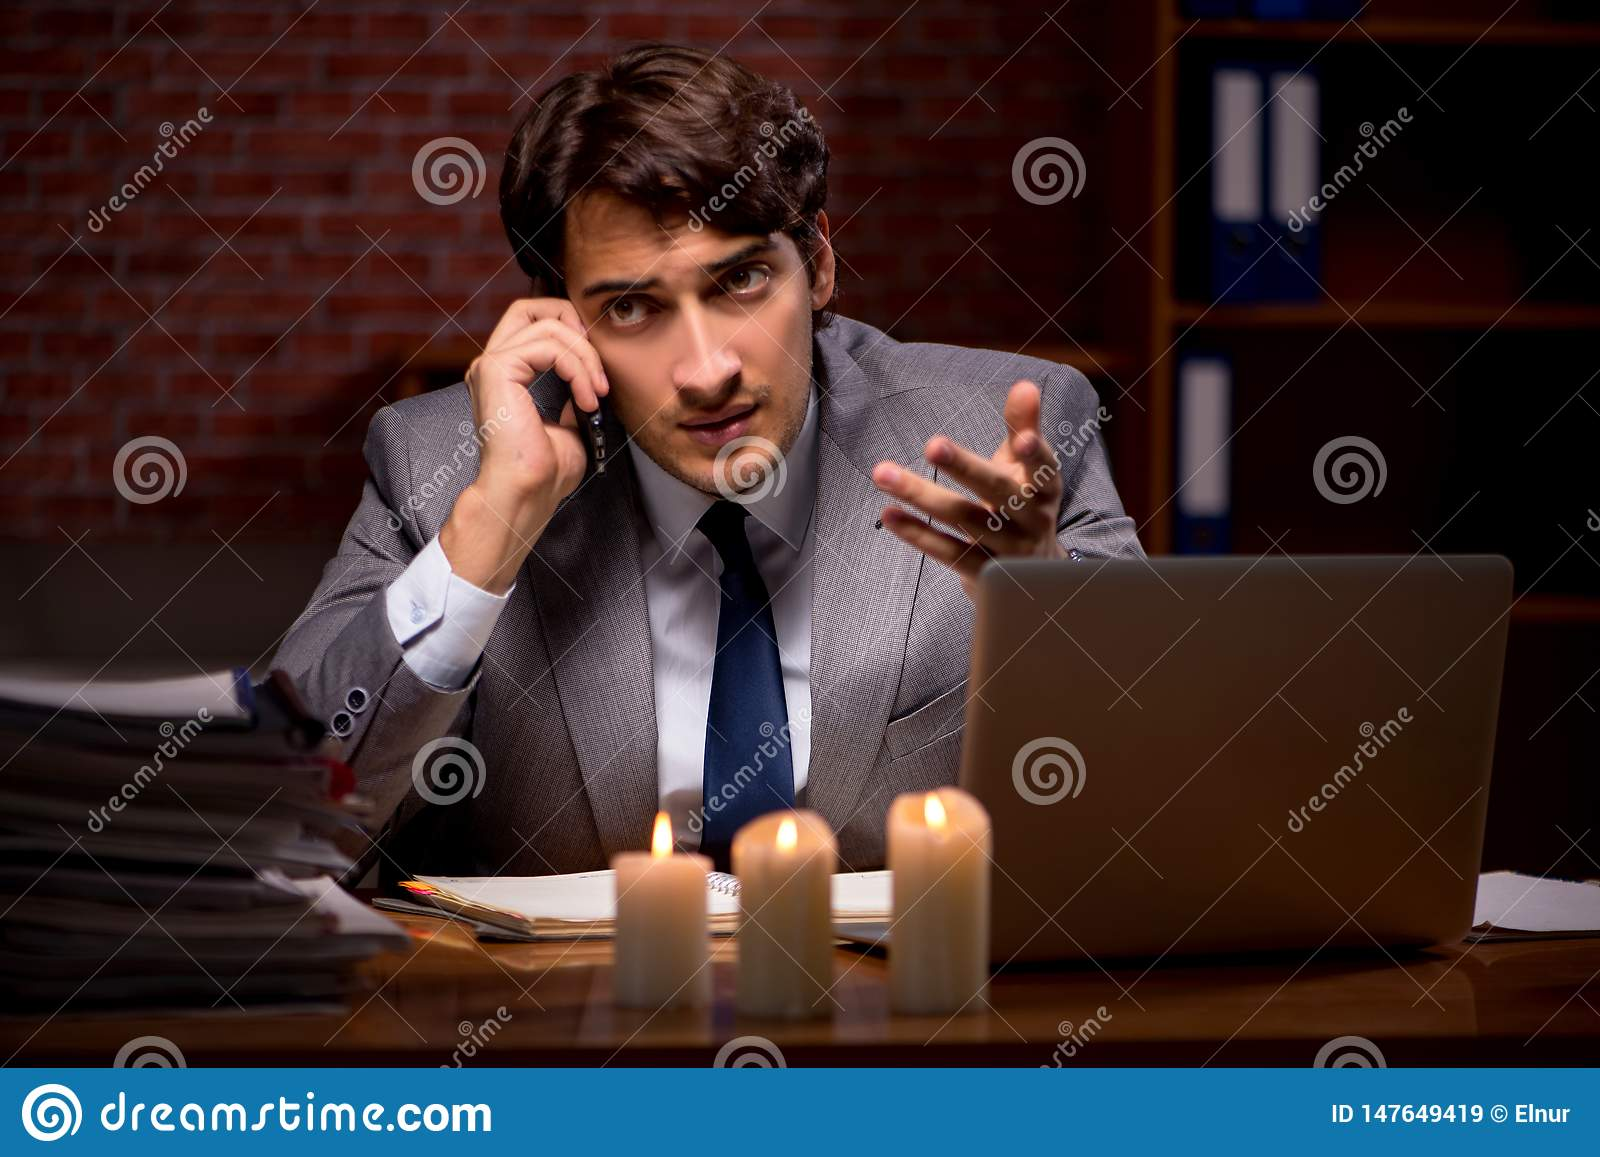 The businessman working late in office with candle light